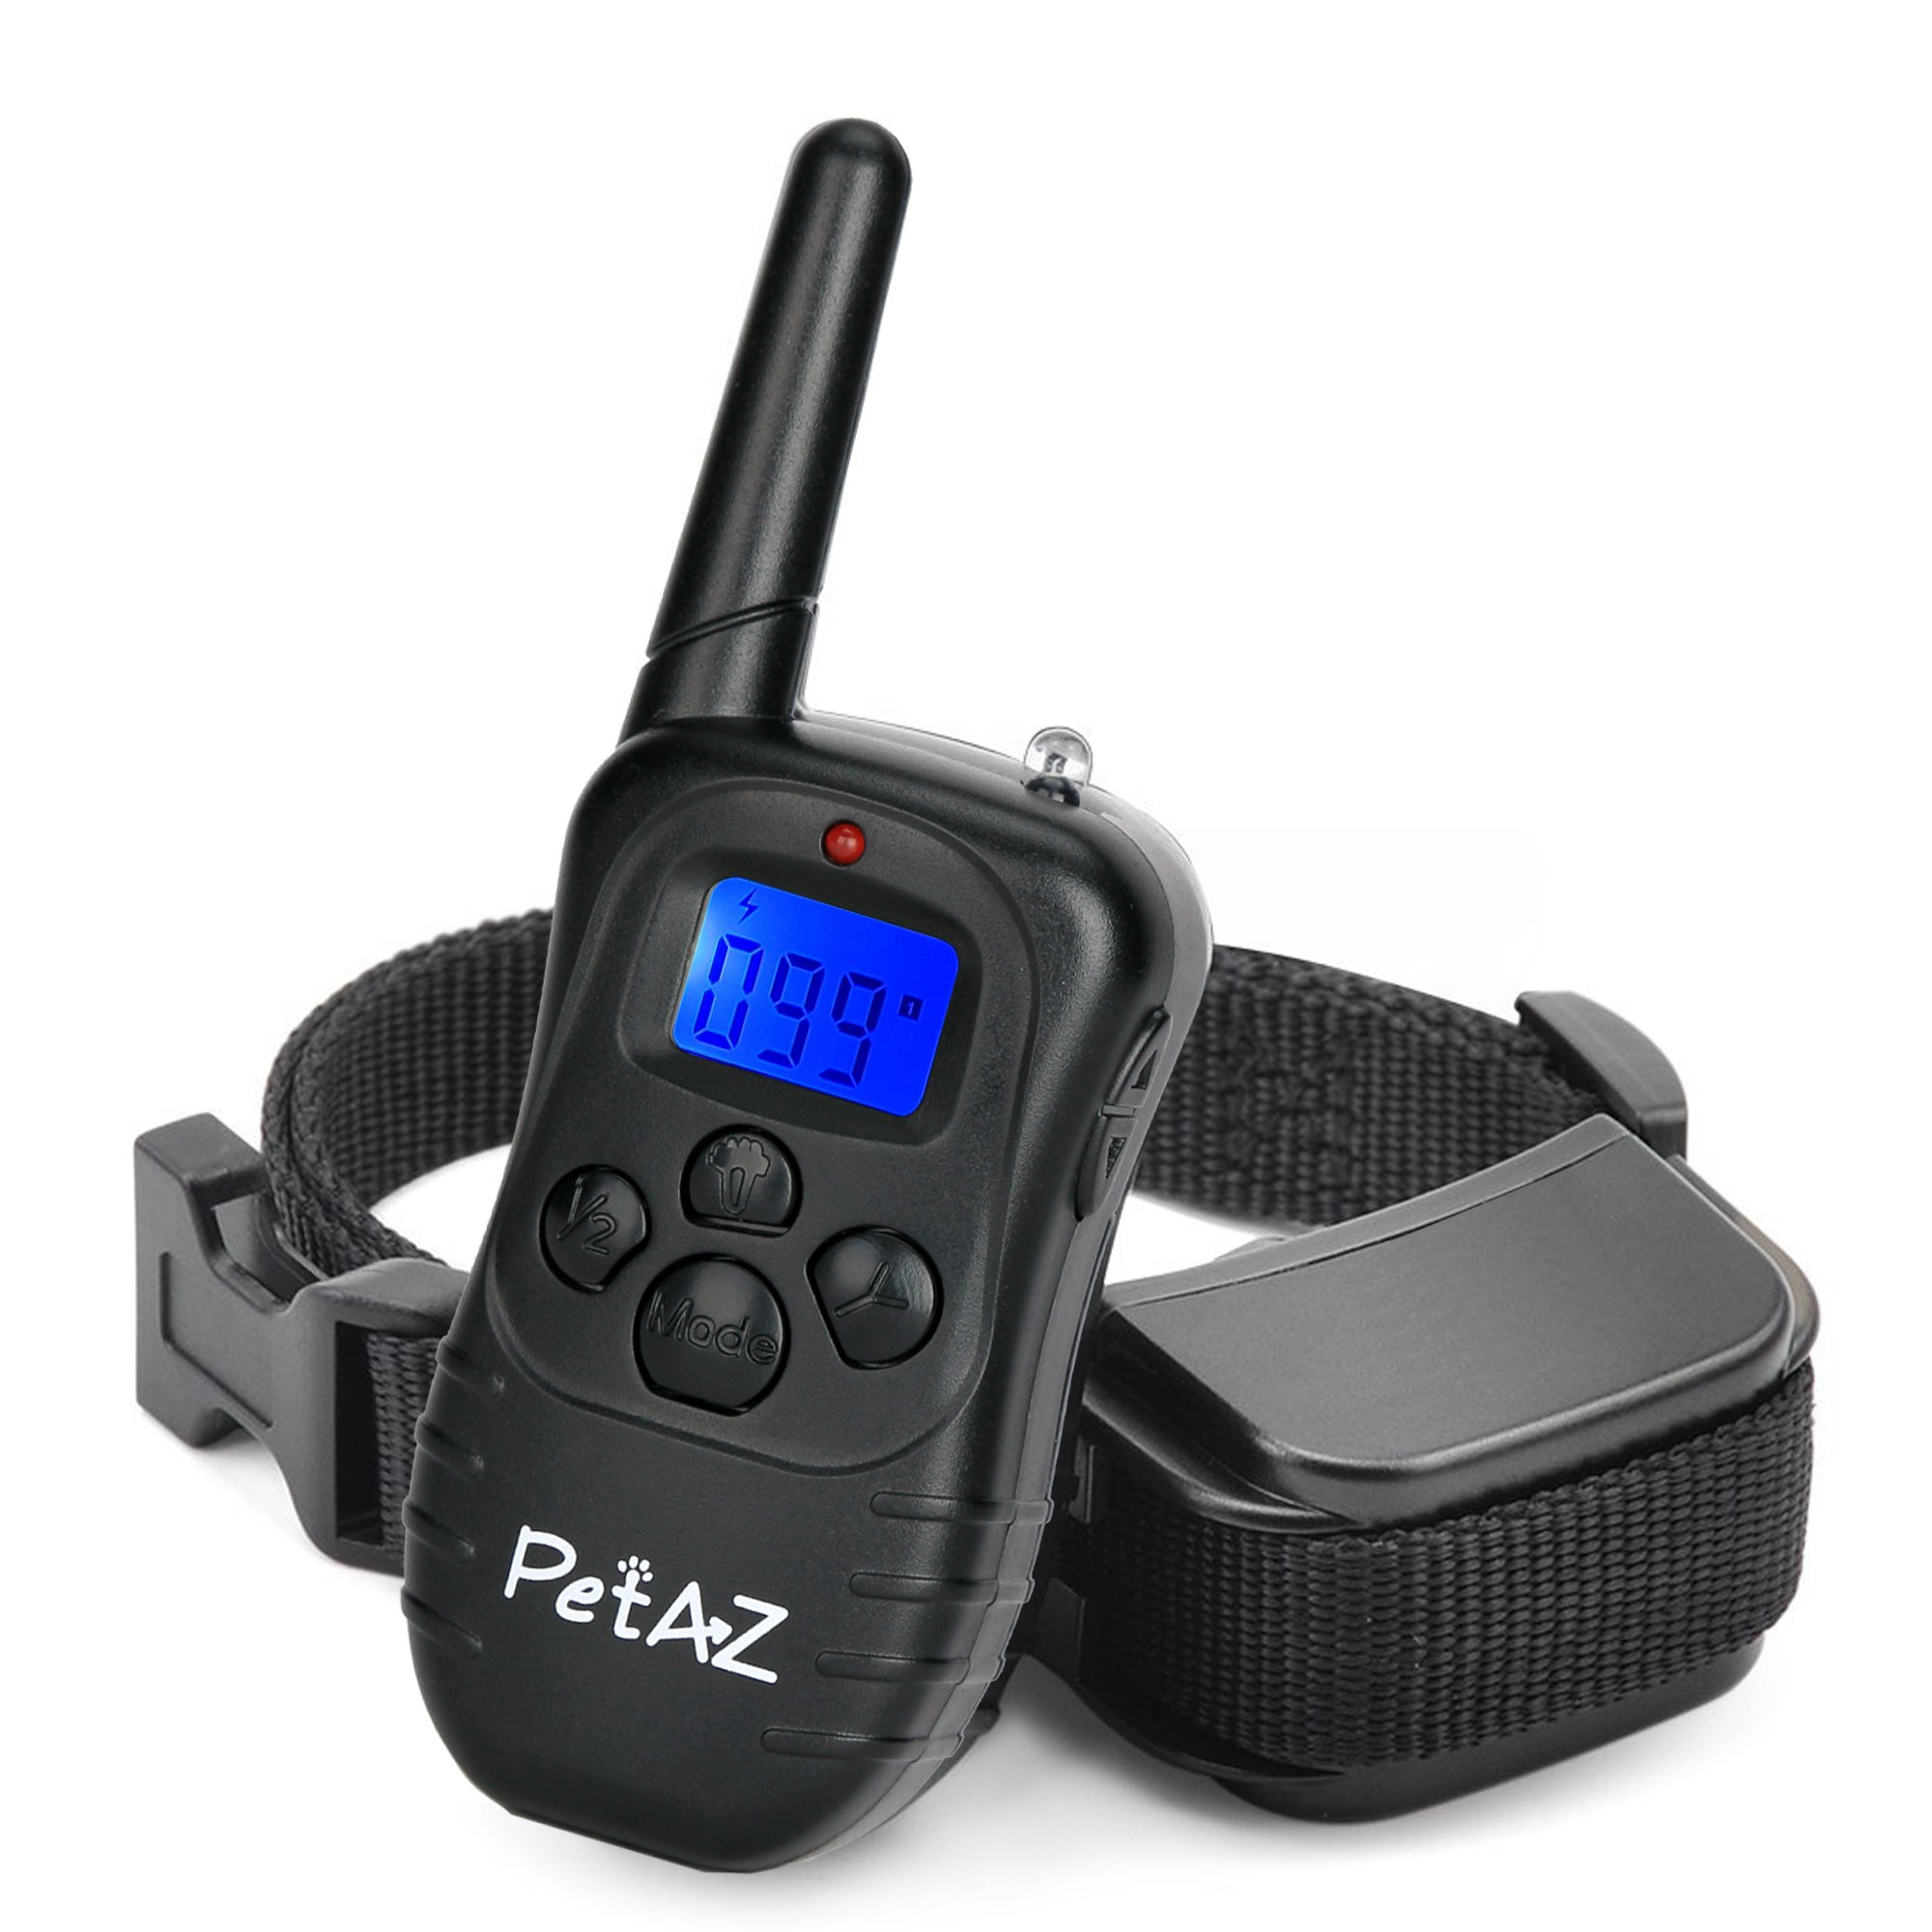 PetAZ Dog Training Collar Electric Dog Shock Collars 330 yards rang Remote, Rechargeable and Rainproof Beep/Vibration/Shock For Small,Medium,Large Dogs (10-120lbs) (for 1 dog)